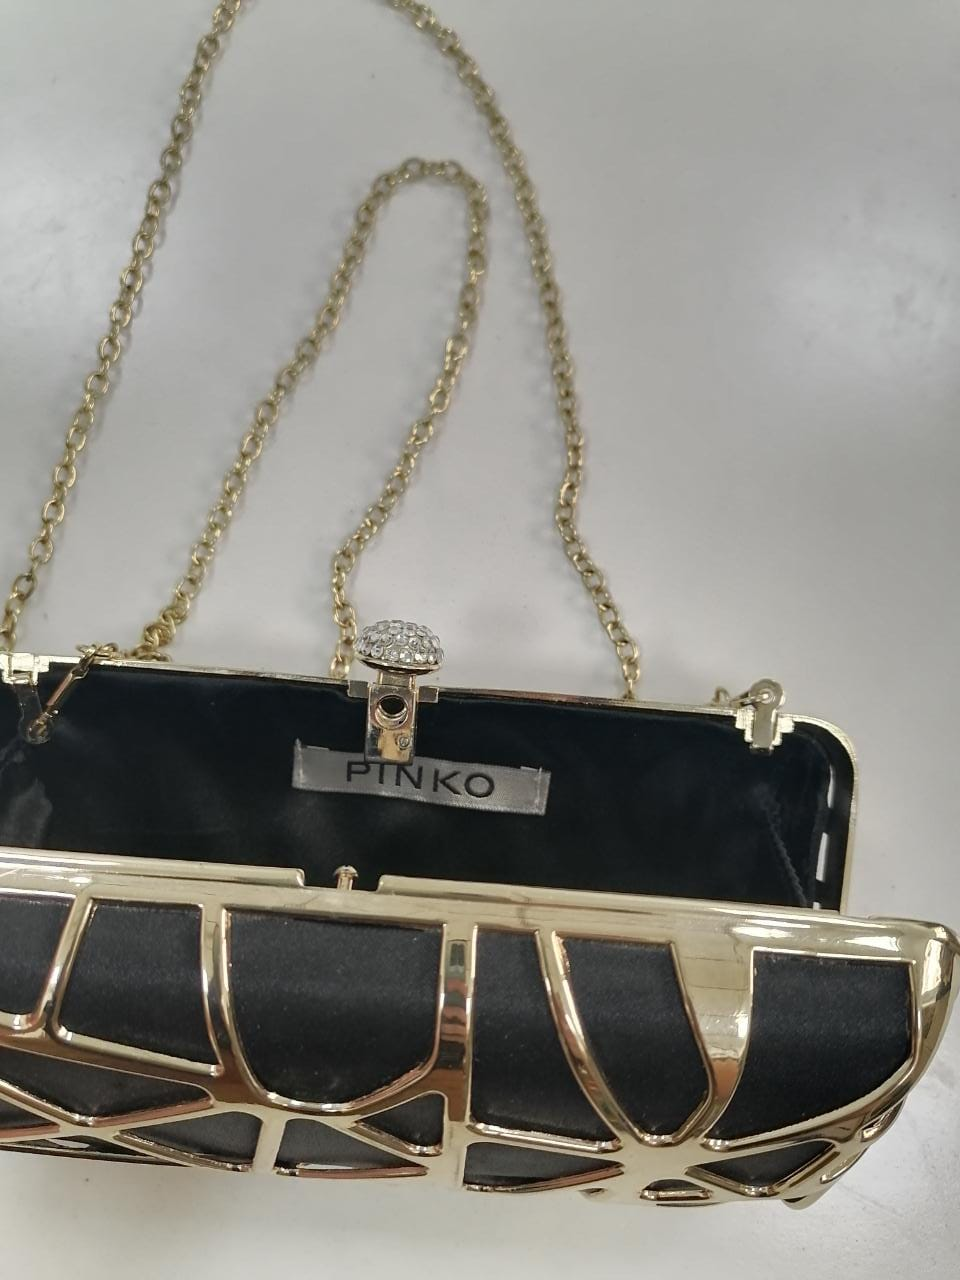 Handbag by Marc Jacobs